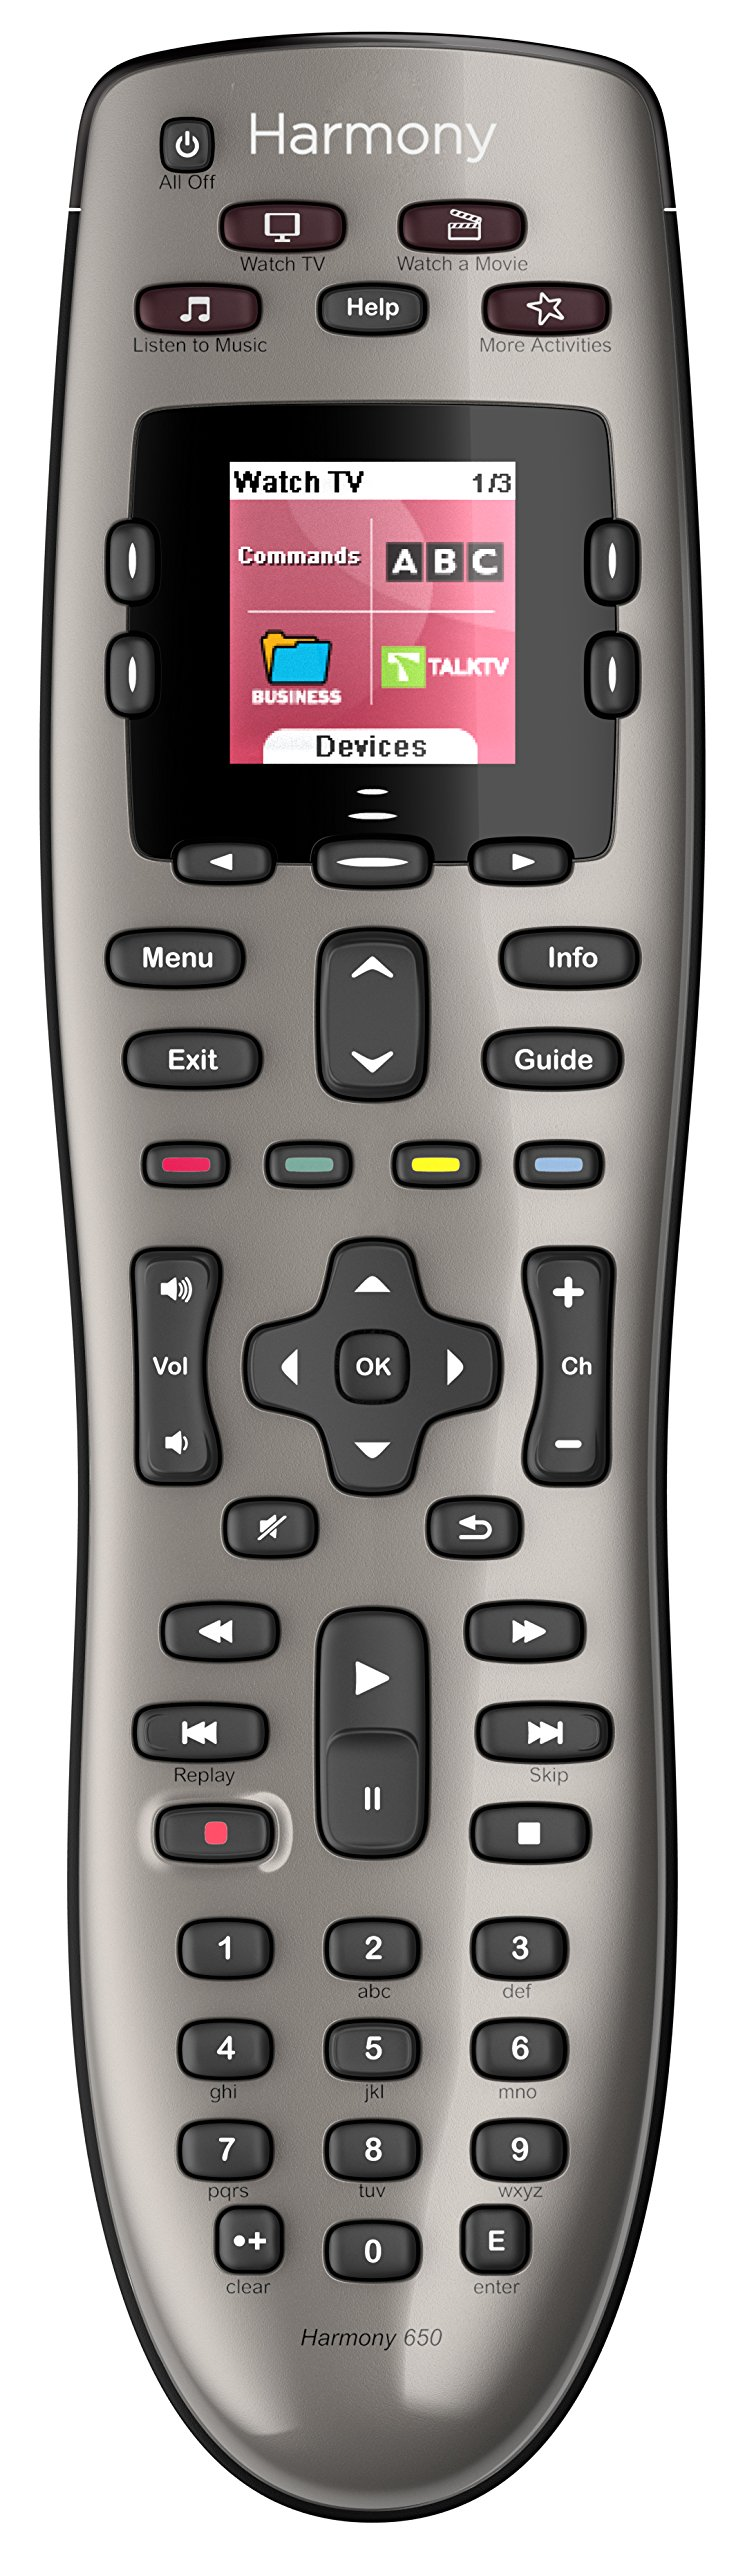 Logitech Harmony 650 Infrared All in One Remote Control, Universal Remote Logitech, Programmable Remote (Silver) by Logitech